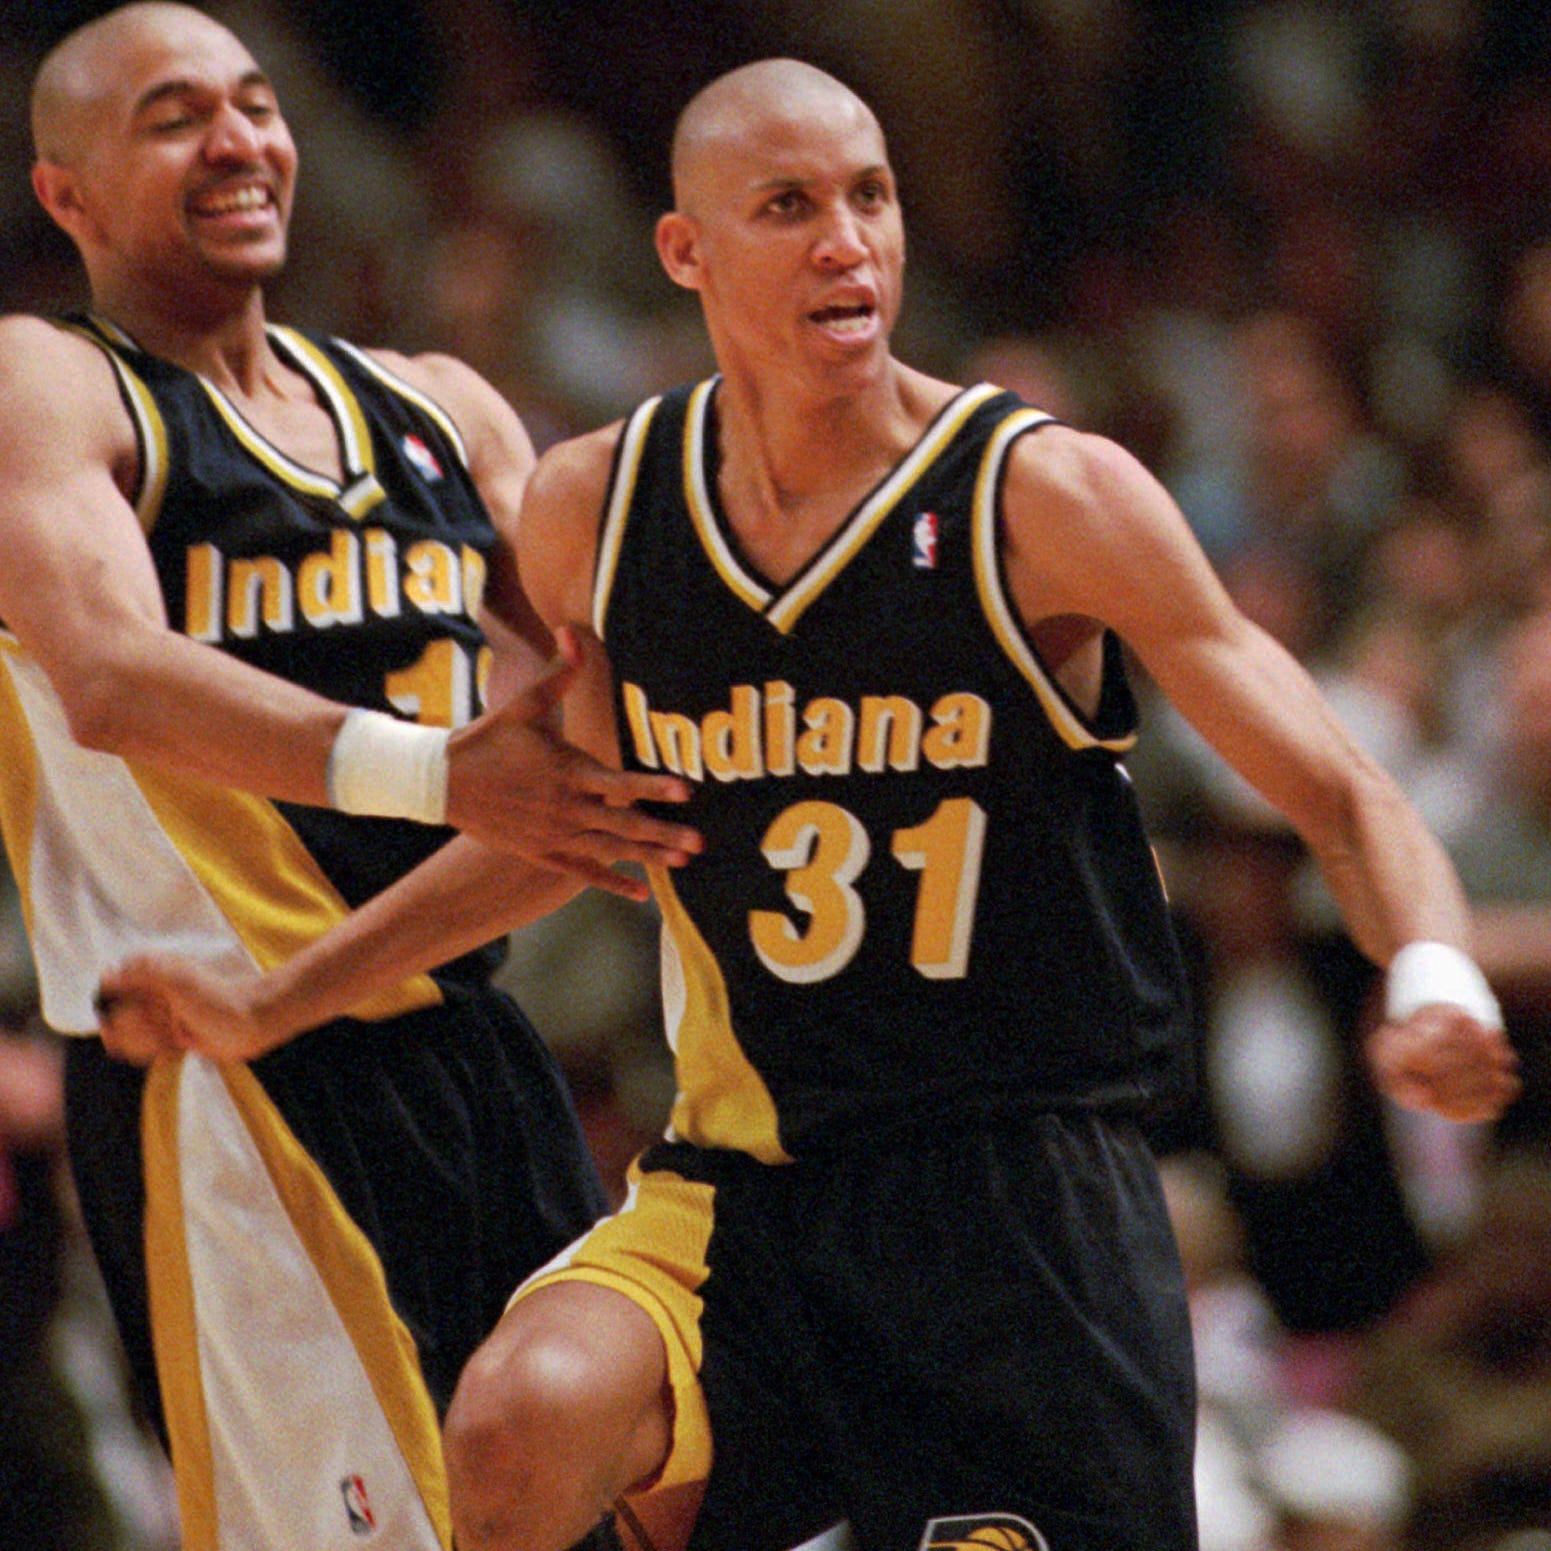 Reggie Miller's 8 points in 8.9 seconds vs. the Pacers' 8 points in the third quarter